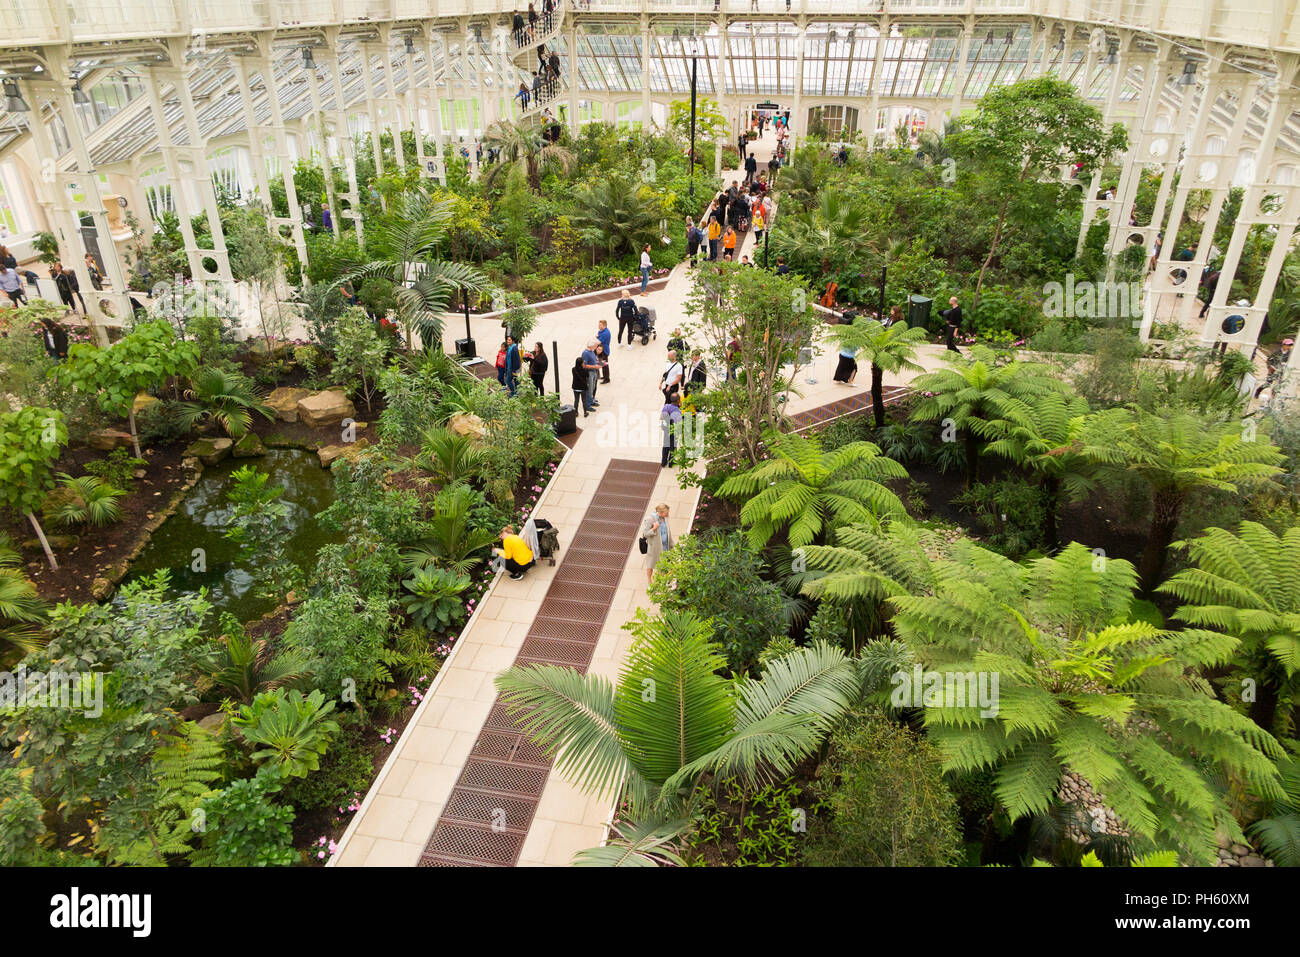 View from the balcony of the restored / after the 2018 restoration of Victorian Temperate House at the Royal Botanic Garden, Kew. London. UK. (101) - Stock Image